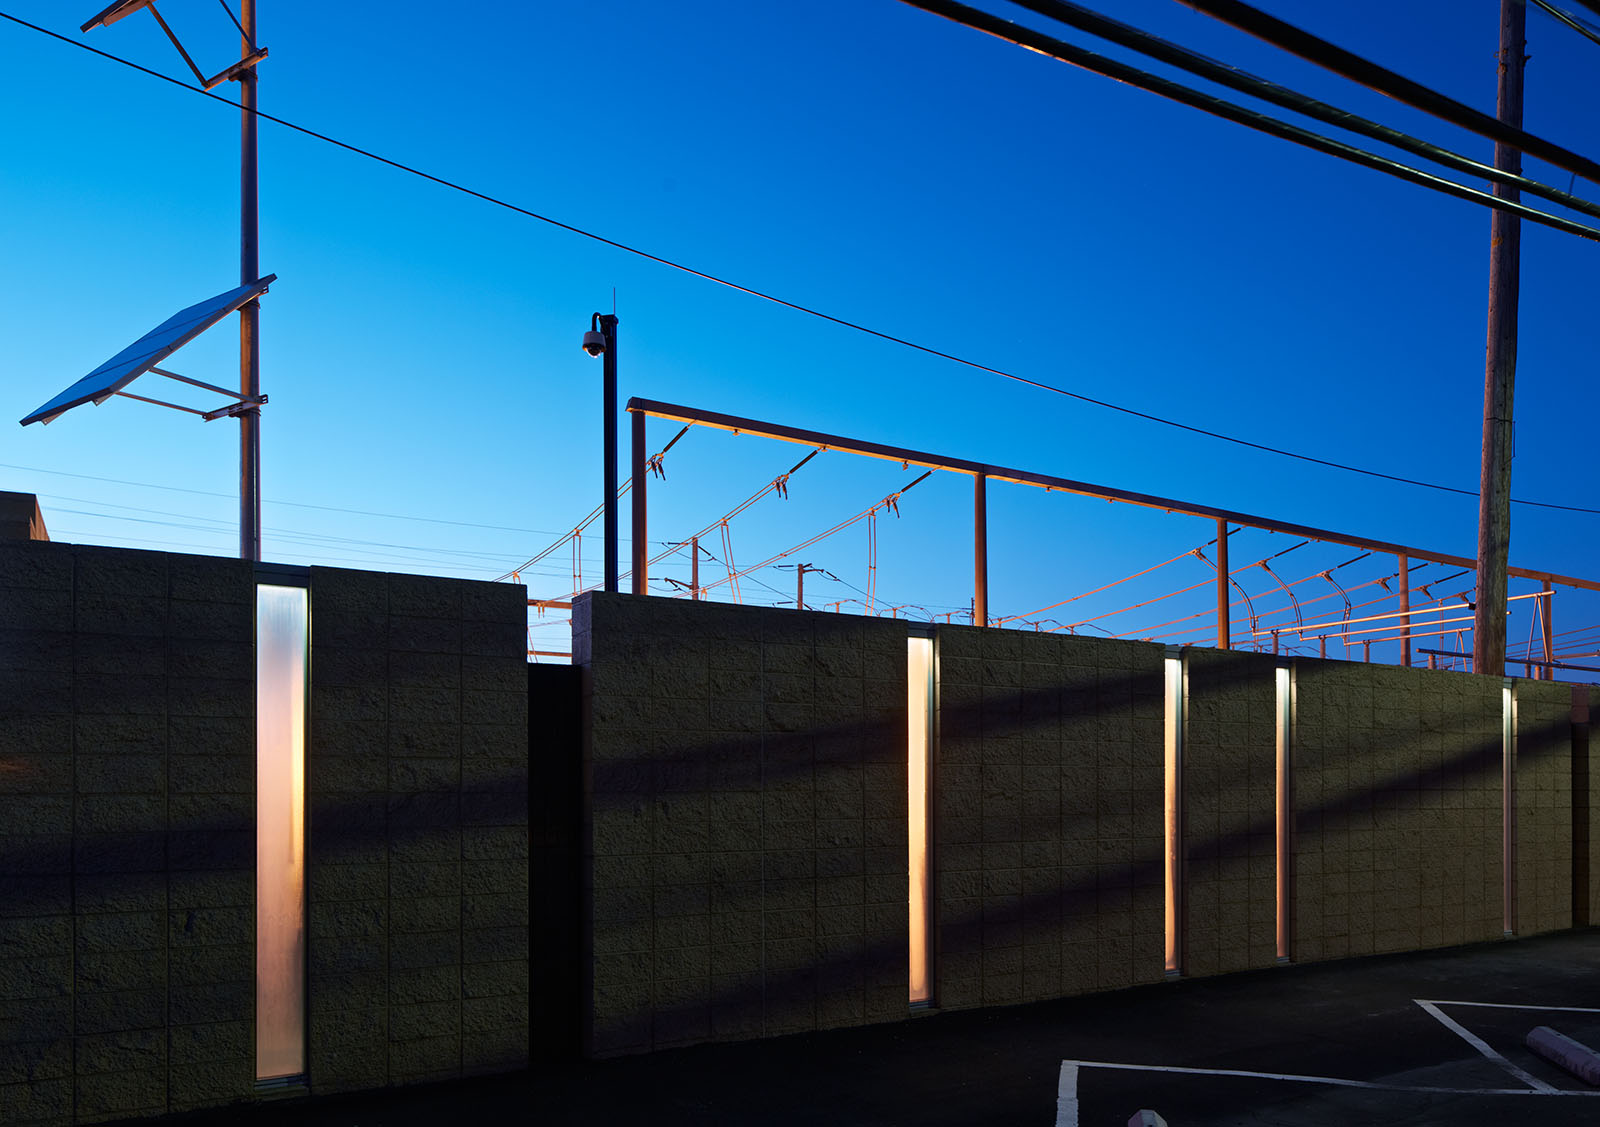 Channel glass illuminated by solar power lighting